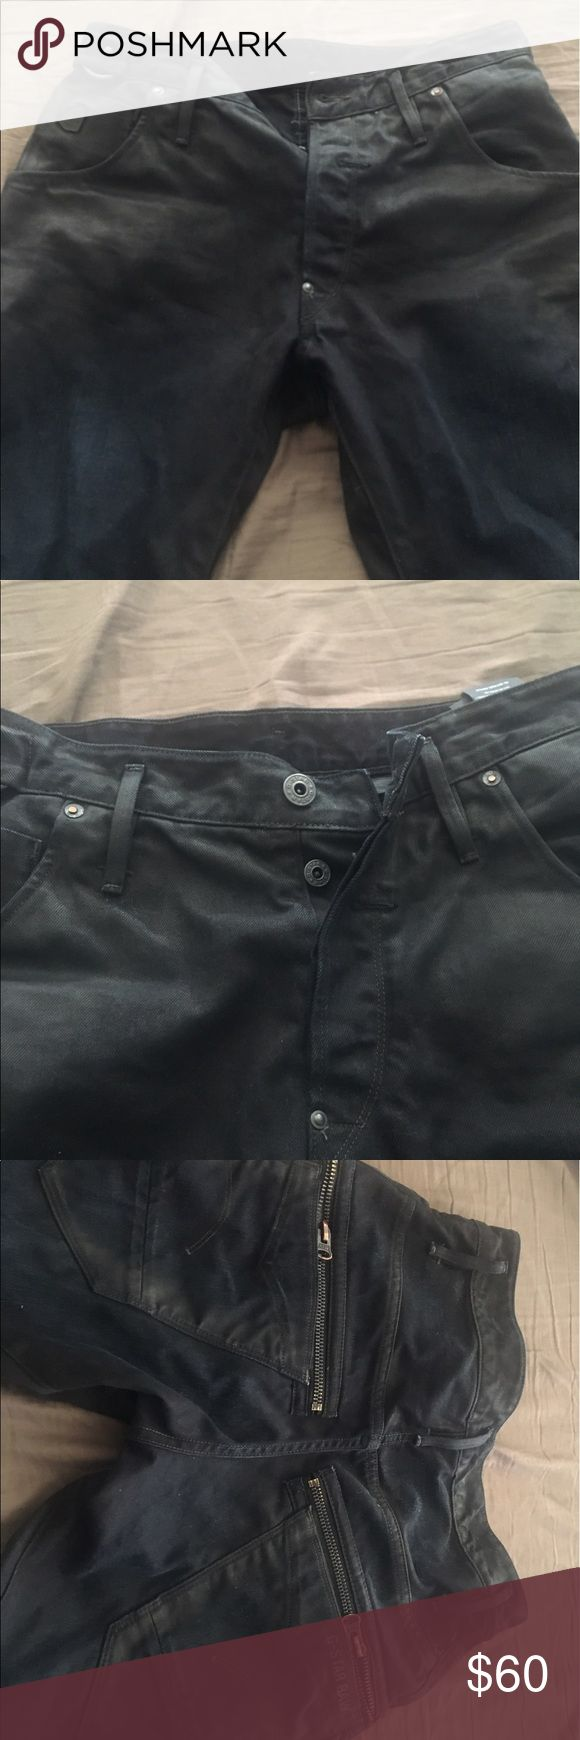 GSTAR RAW JEANS GSTAR raw jeans  9/10 condition  Worn 3 times  Don't fit me no more  Size 30x32 G-Star Jeans Straight